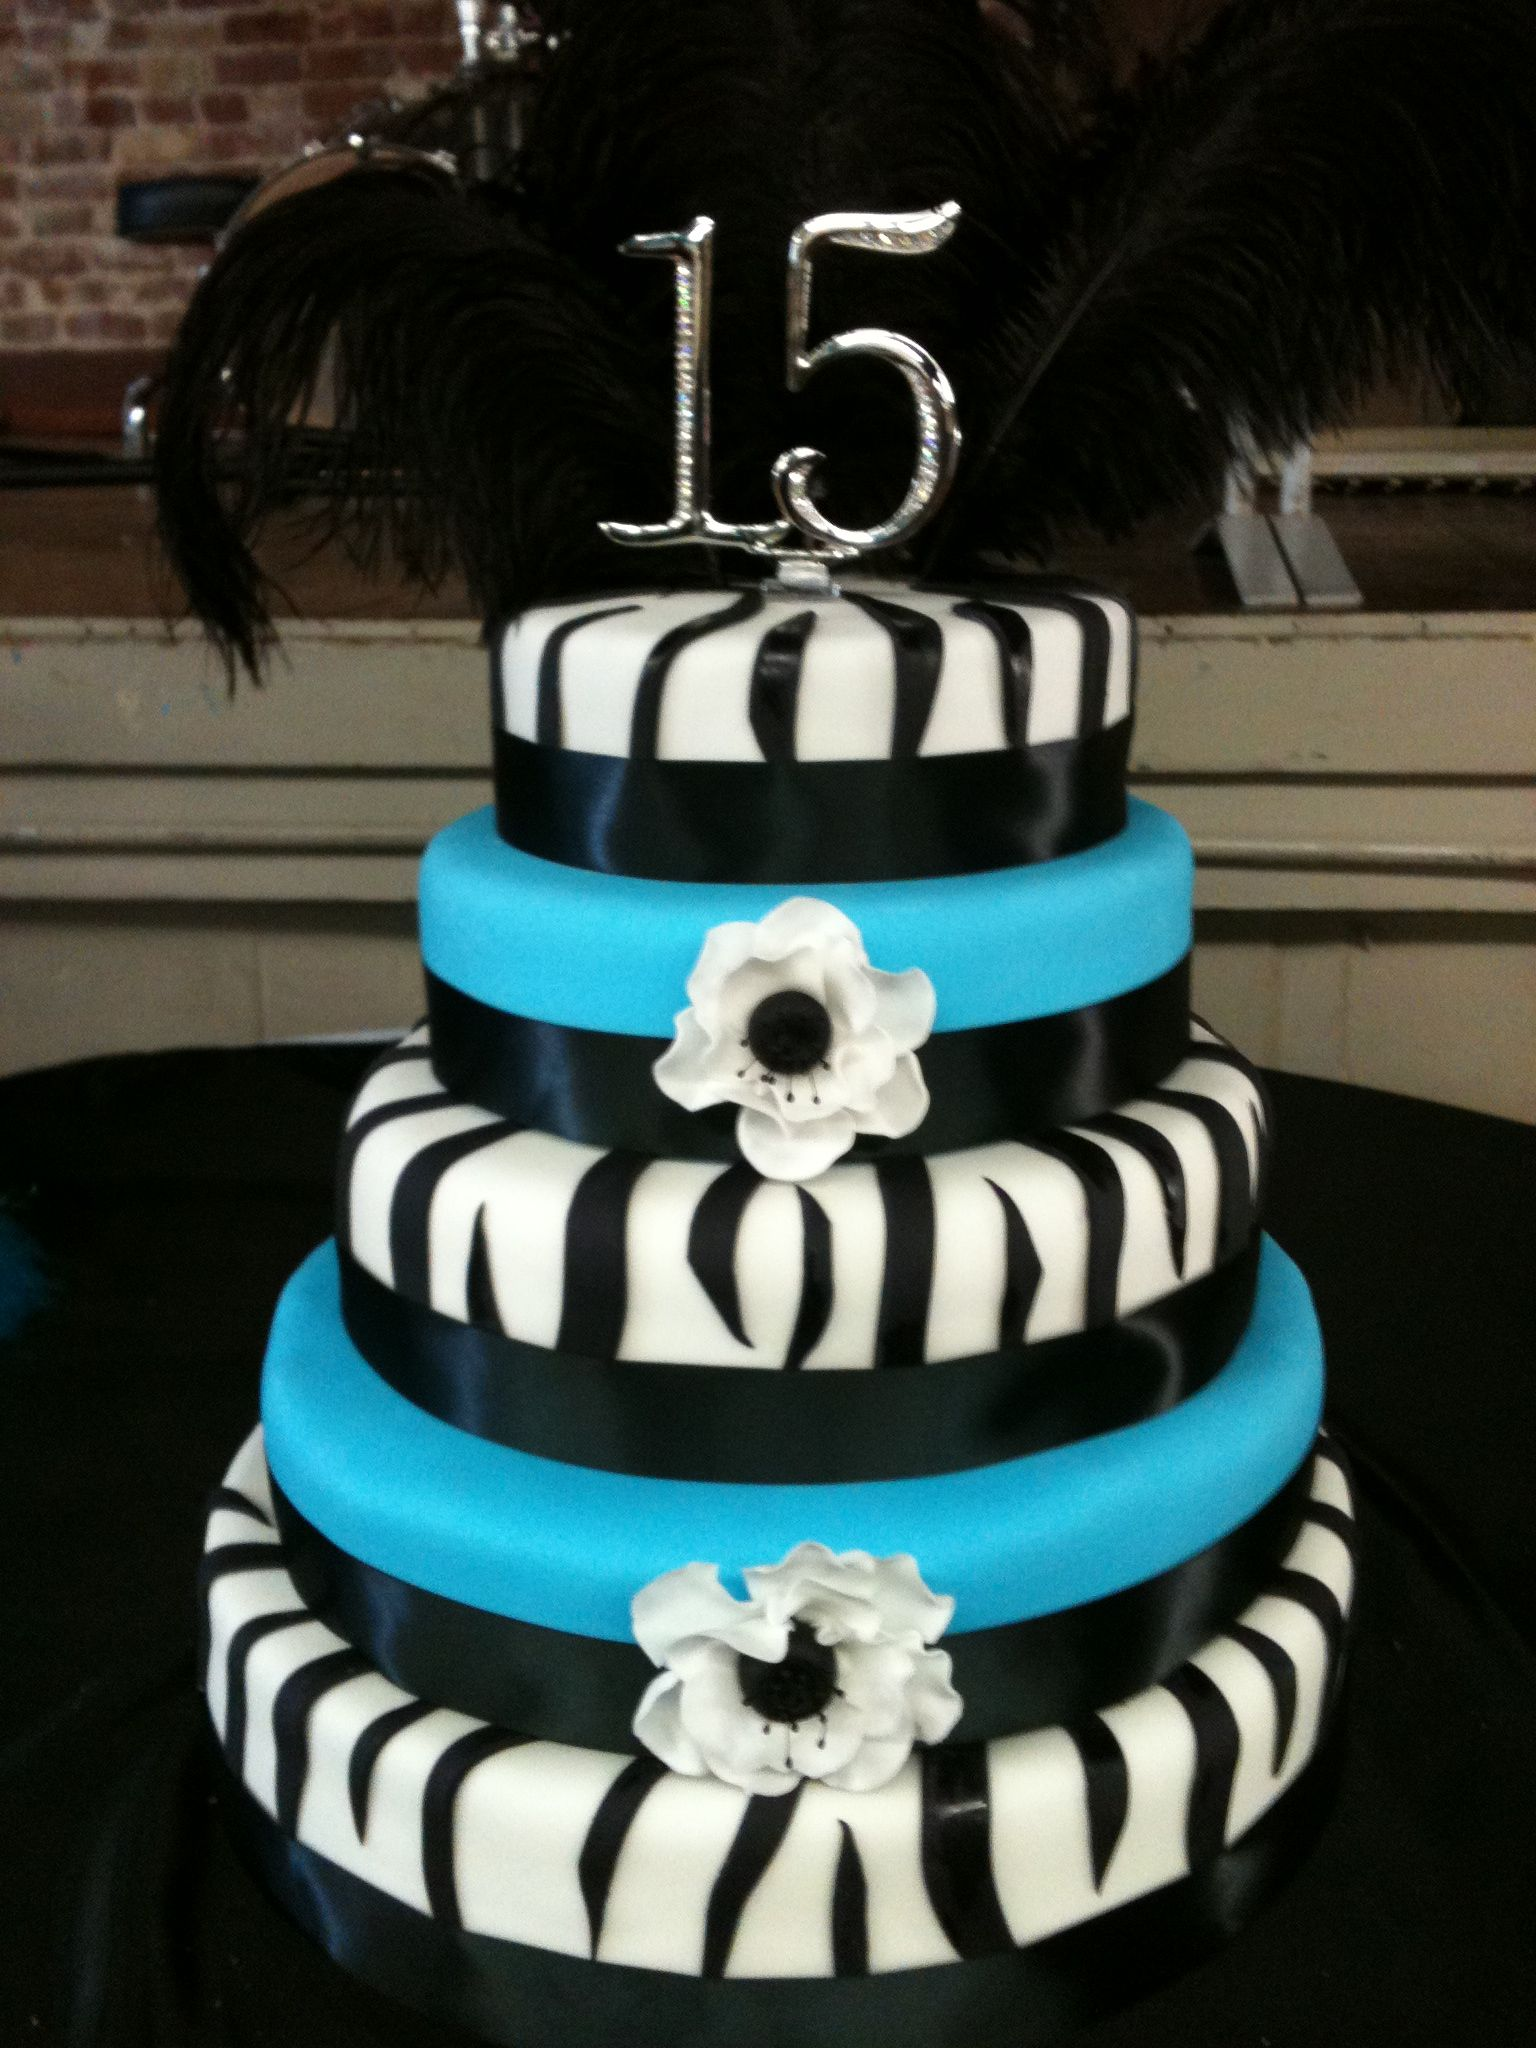 Fabulous Cake Cake For 15 cake toppers visit